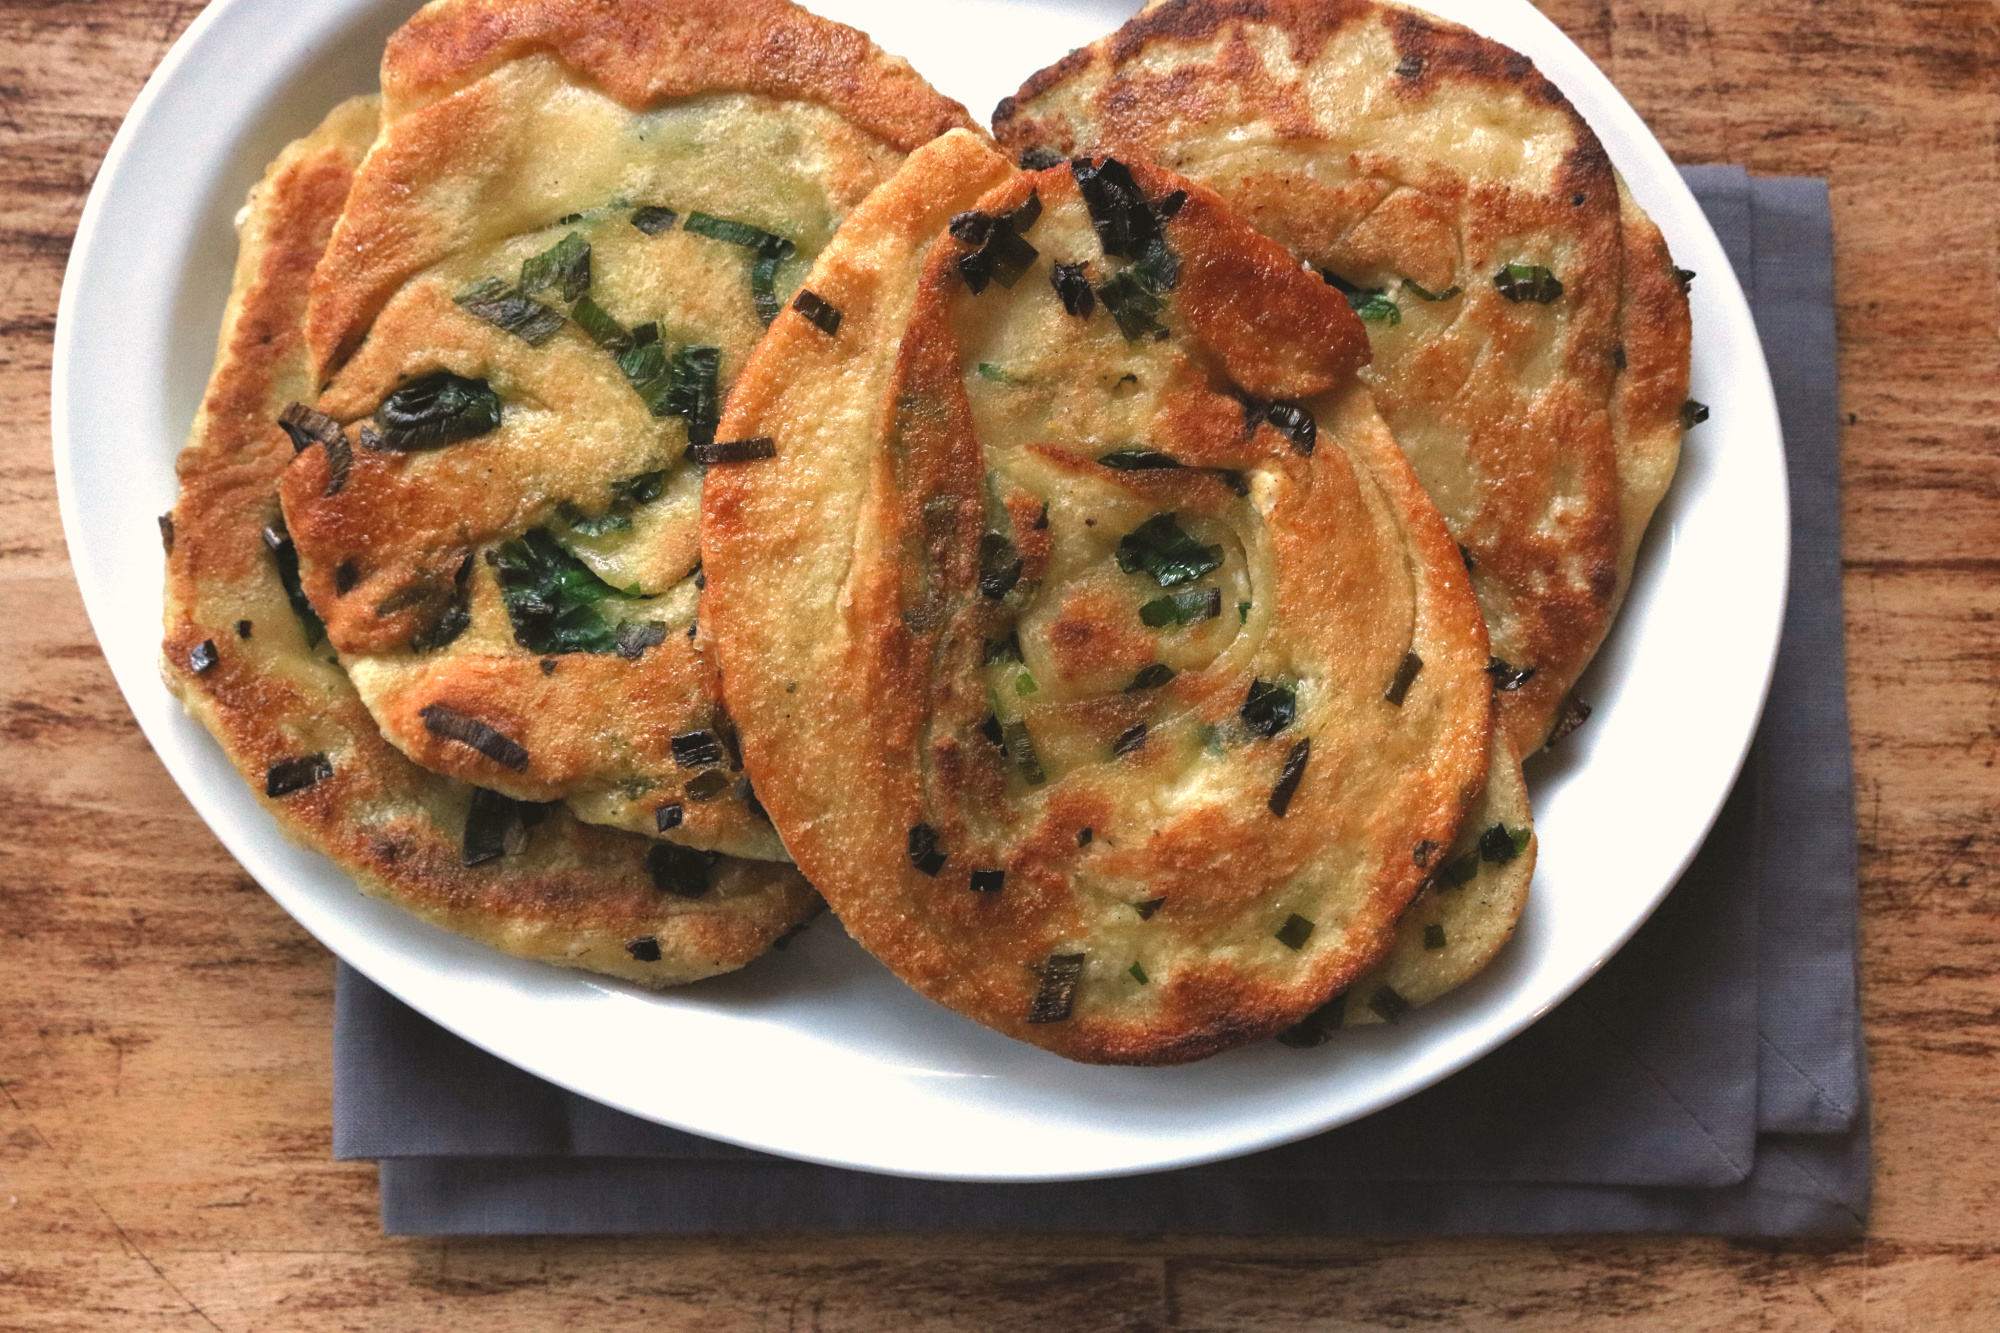 Green Onion cakes 1